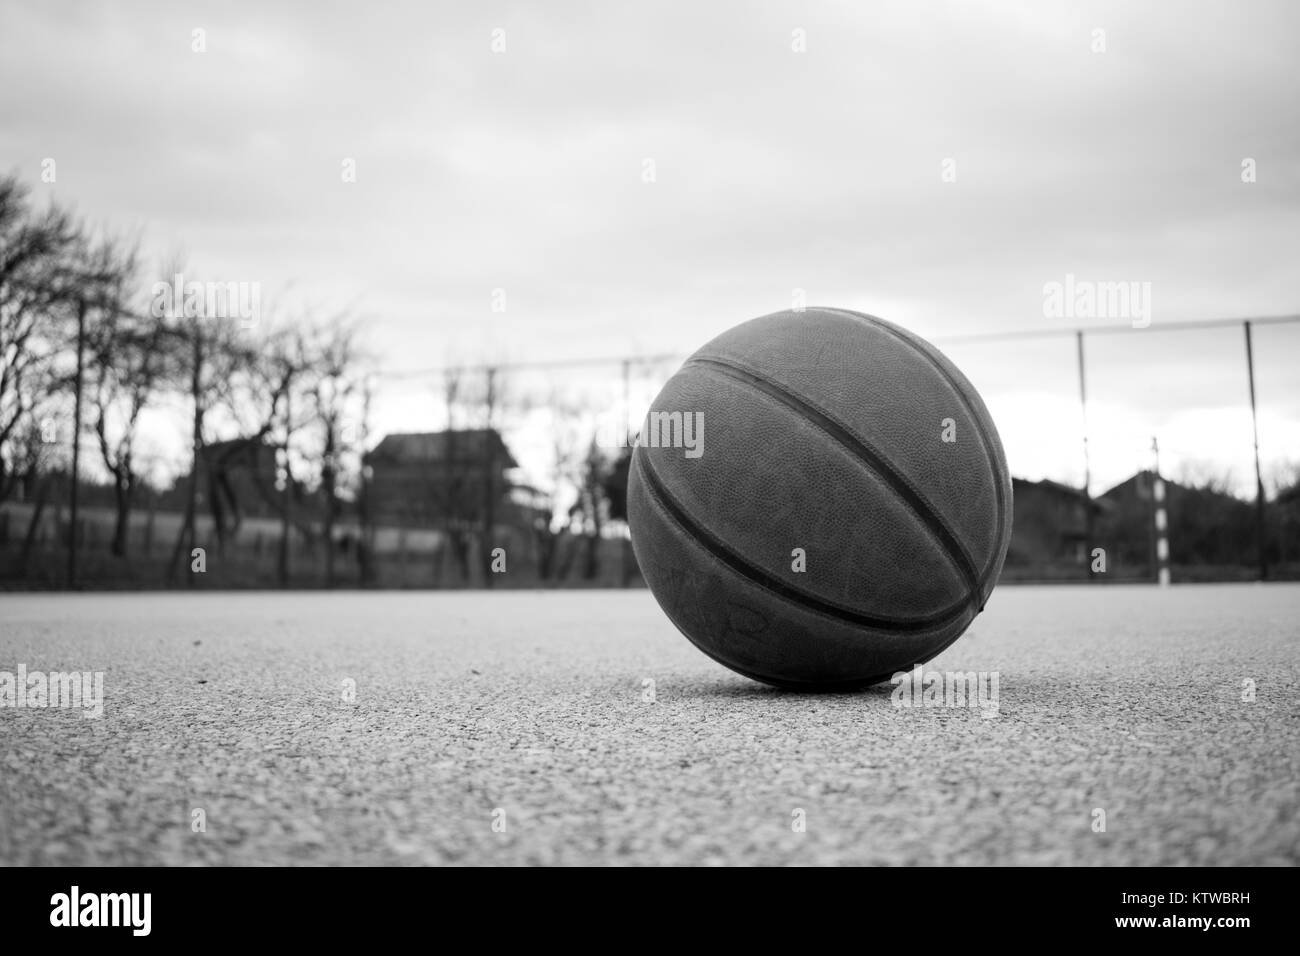 Black and white image of used orange basketball with basket in background basketball street court